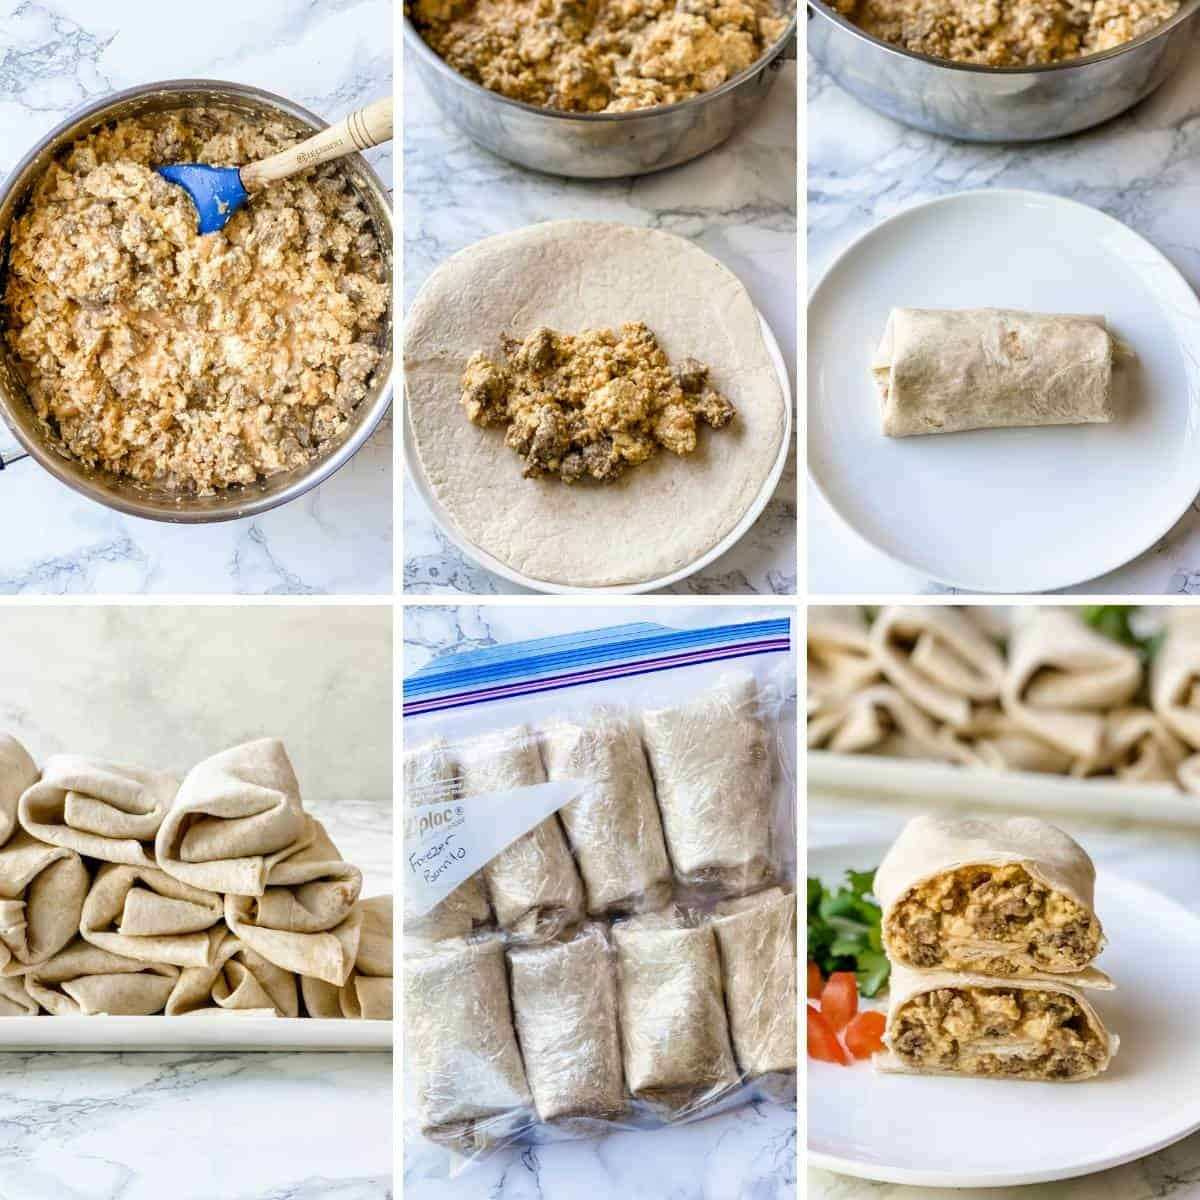 step by step photos on how to fill and roll and freeze a breakfast burrito.